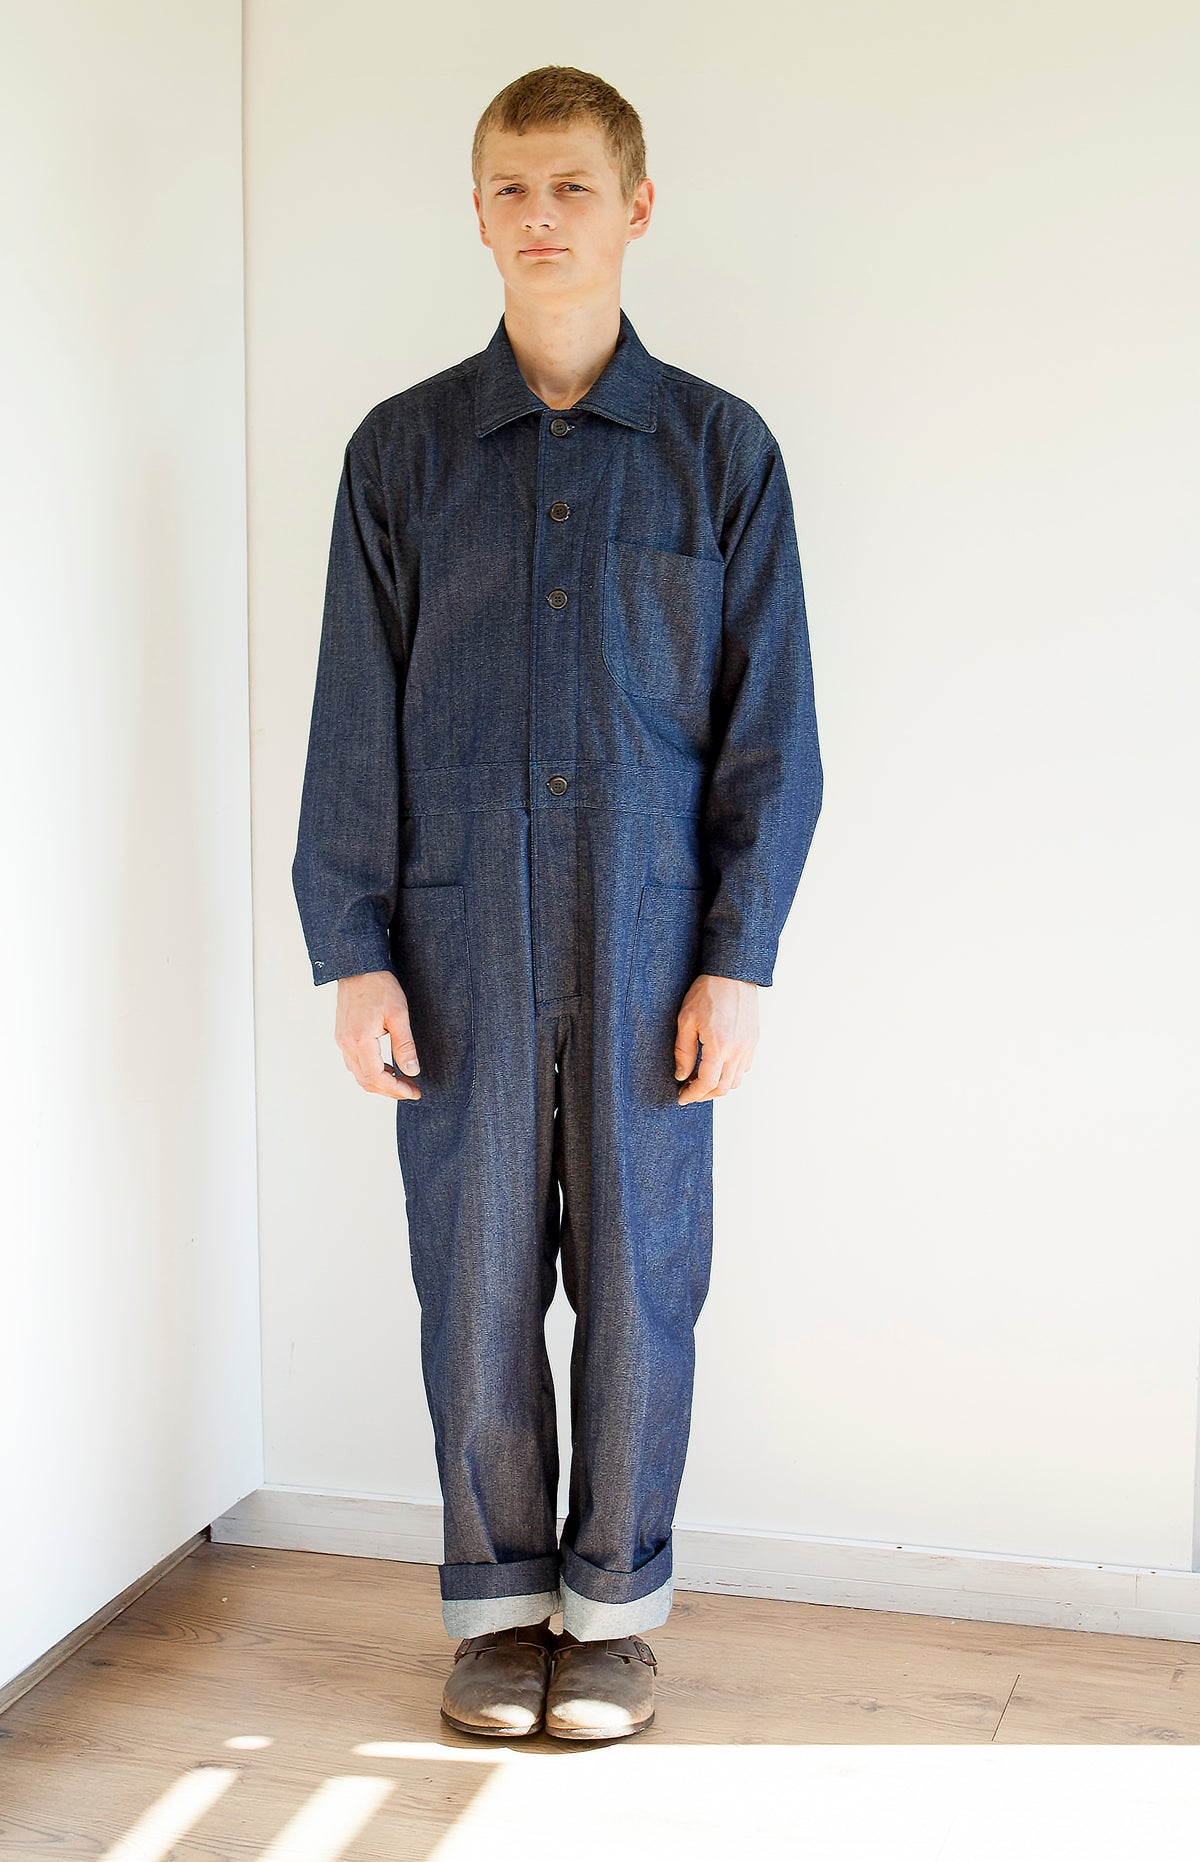 pajotten sustainable menswear denim overalls